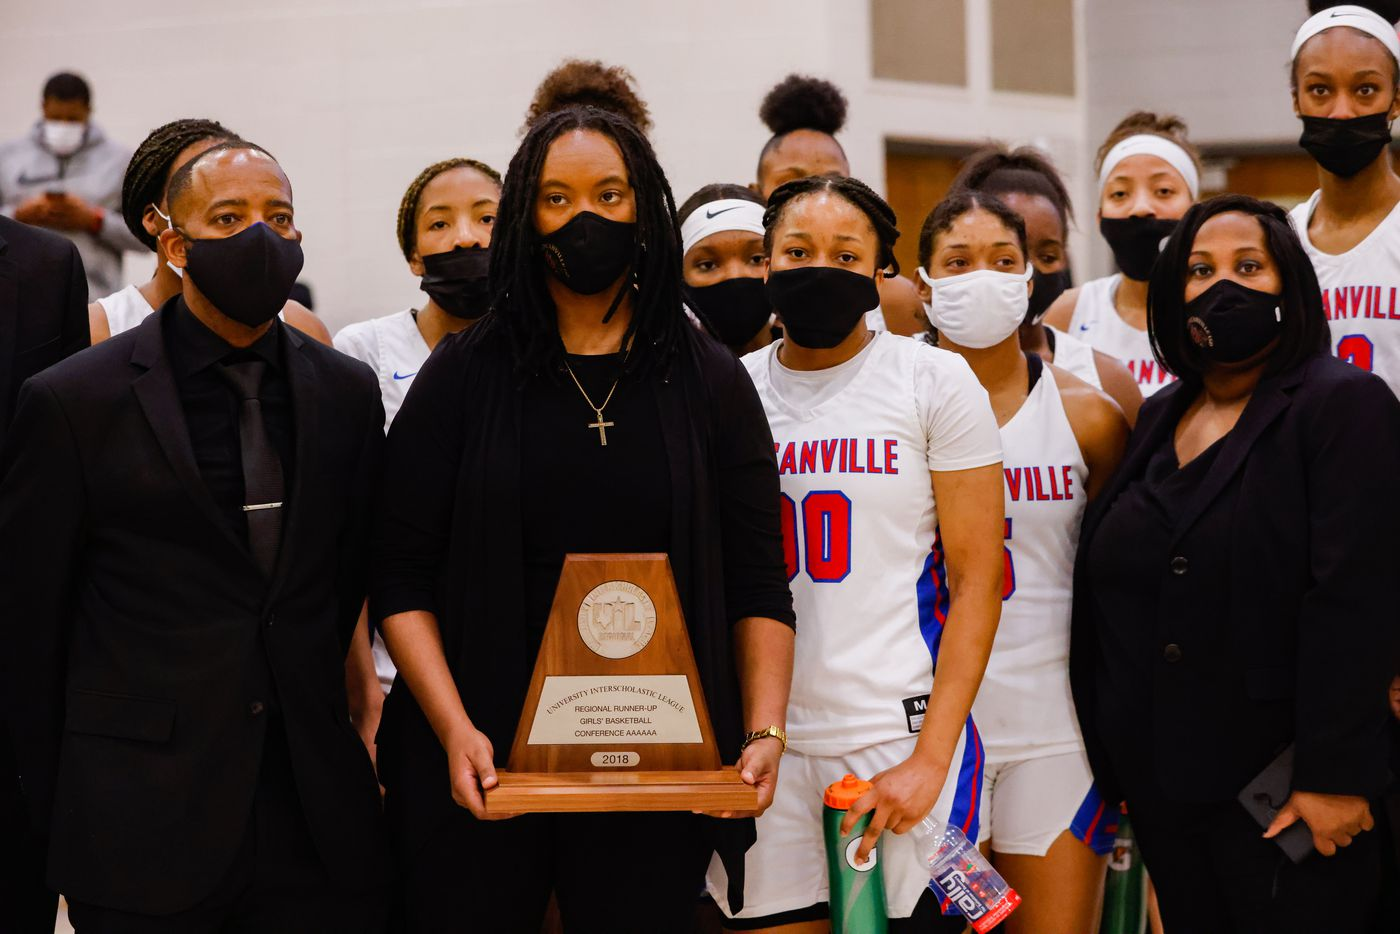 Duncanville's coach LaJeanna Howard holds the Regional Runner-up trophy following a girls basketball Class 6A Region II UIL game against DeSoto in Waxahachie on Tuesday, March 2, 2021. DeSoto won 52-39.  (Juan Figueroa/ The Dallas Morning News)